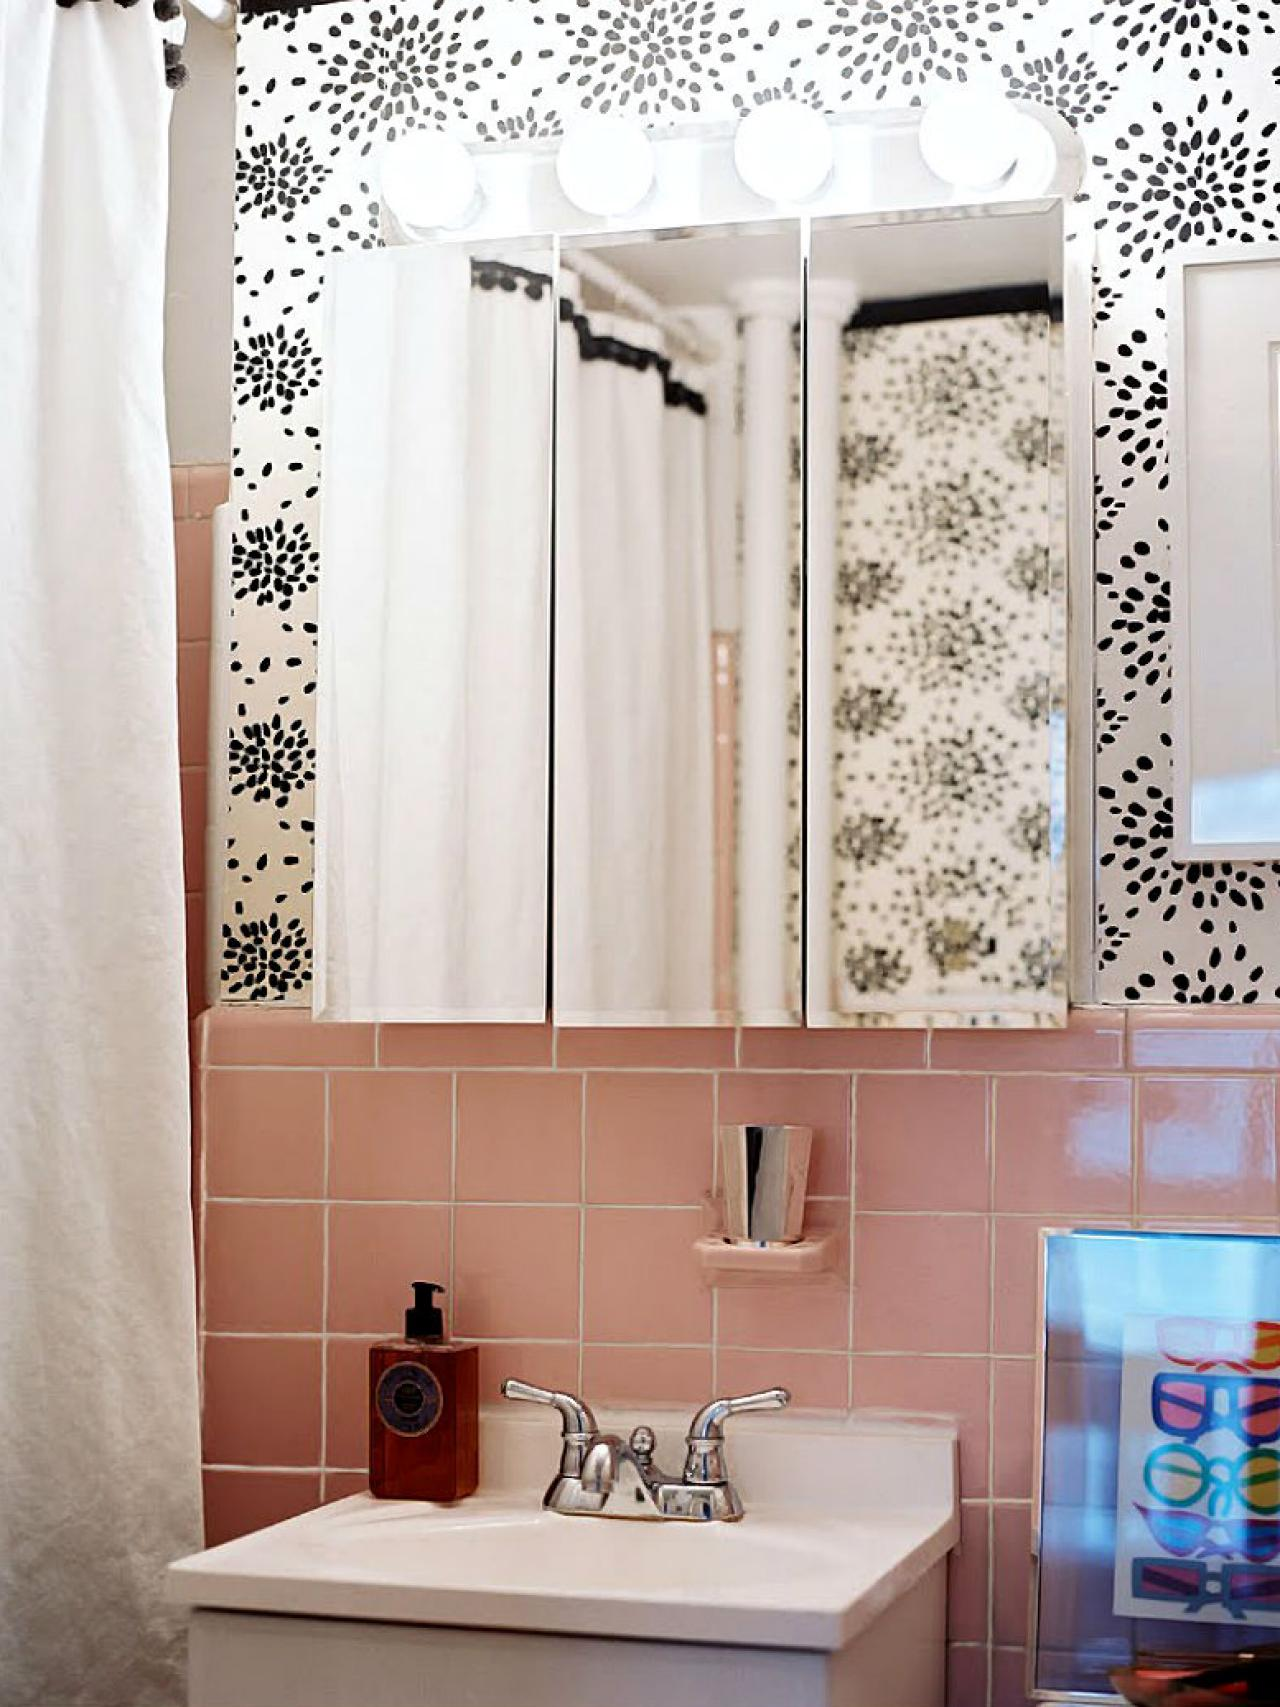 Charmant Reasons To Love Retro Pink Tiled Bathrooms | HGTVu0027s Decorating U0026 Design  Blog | HGTV